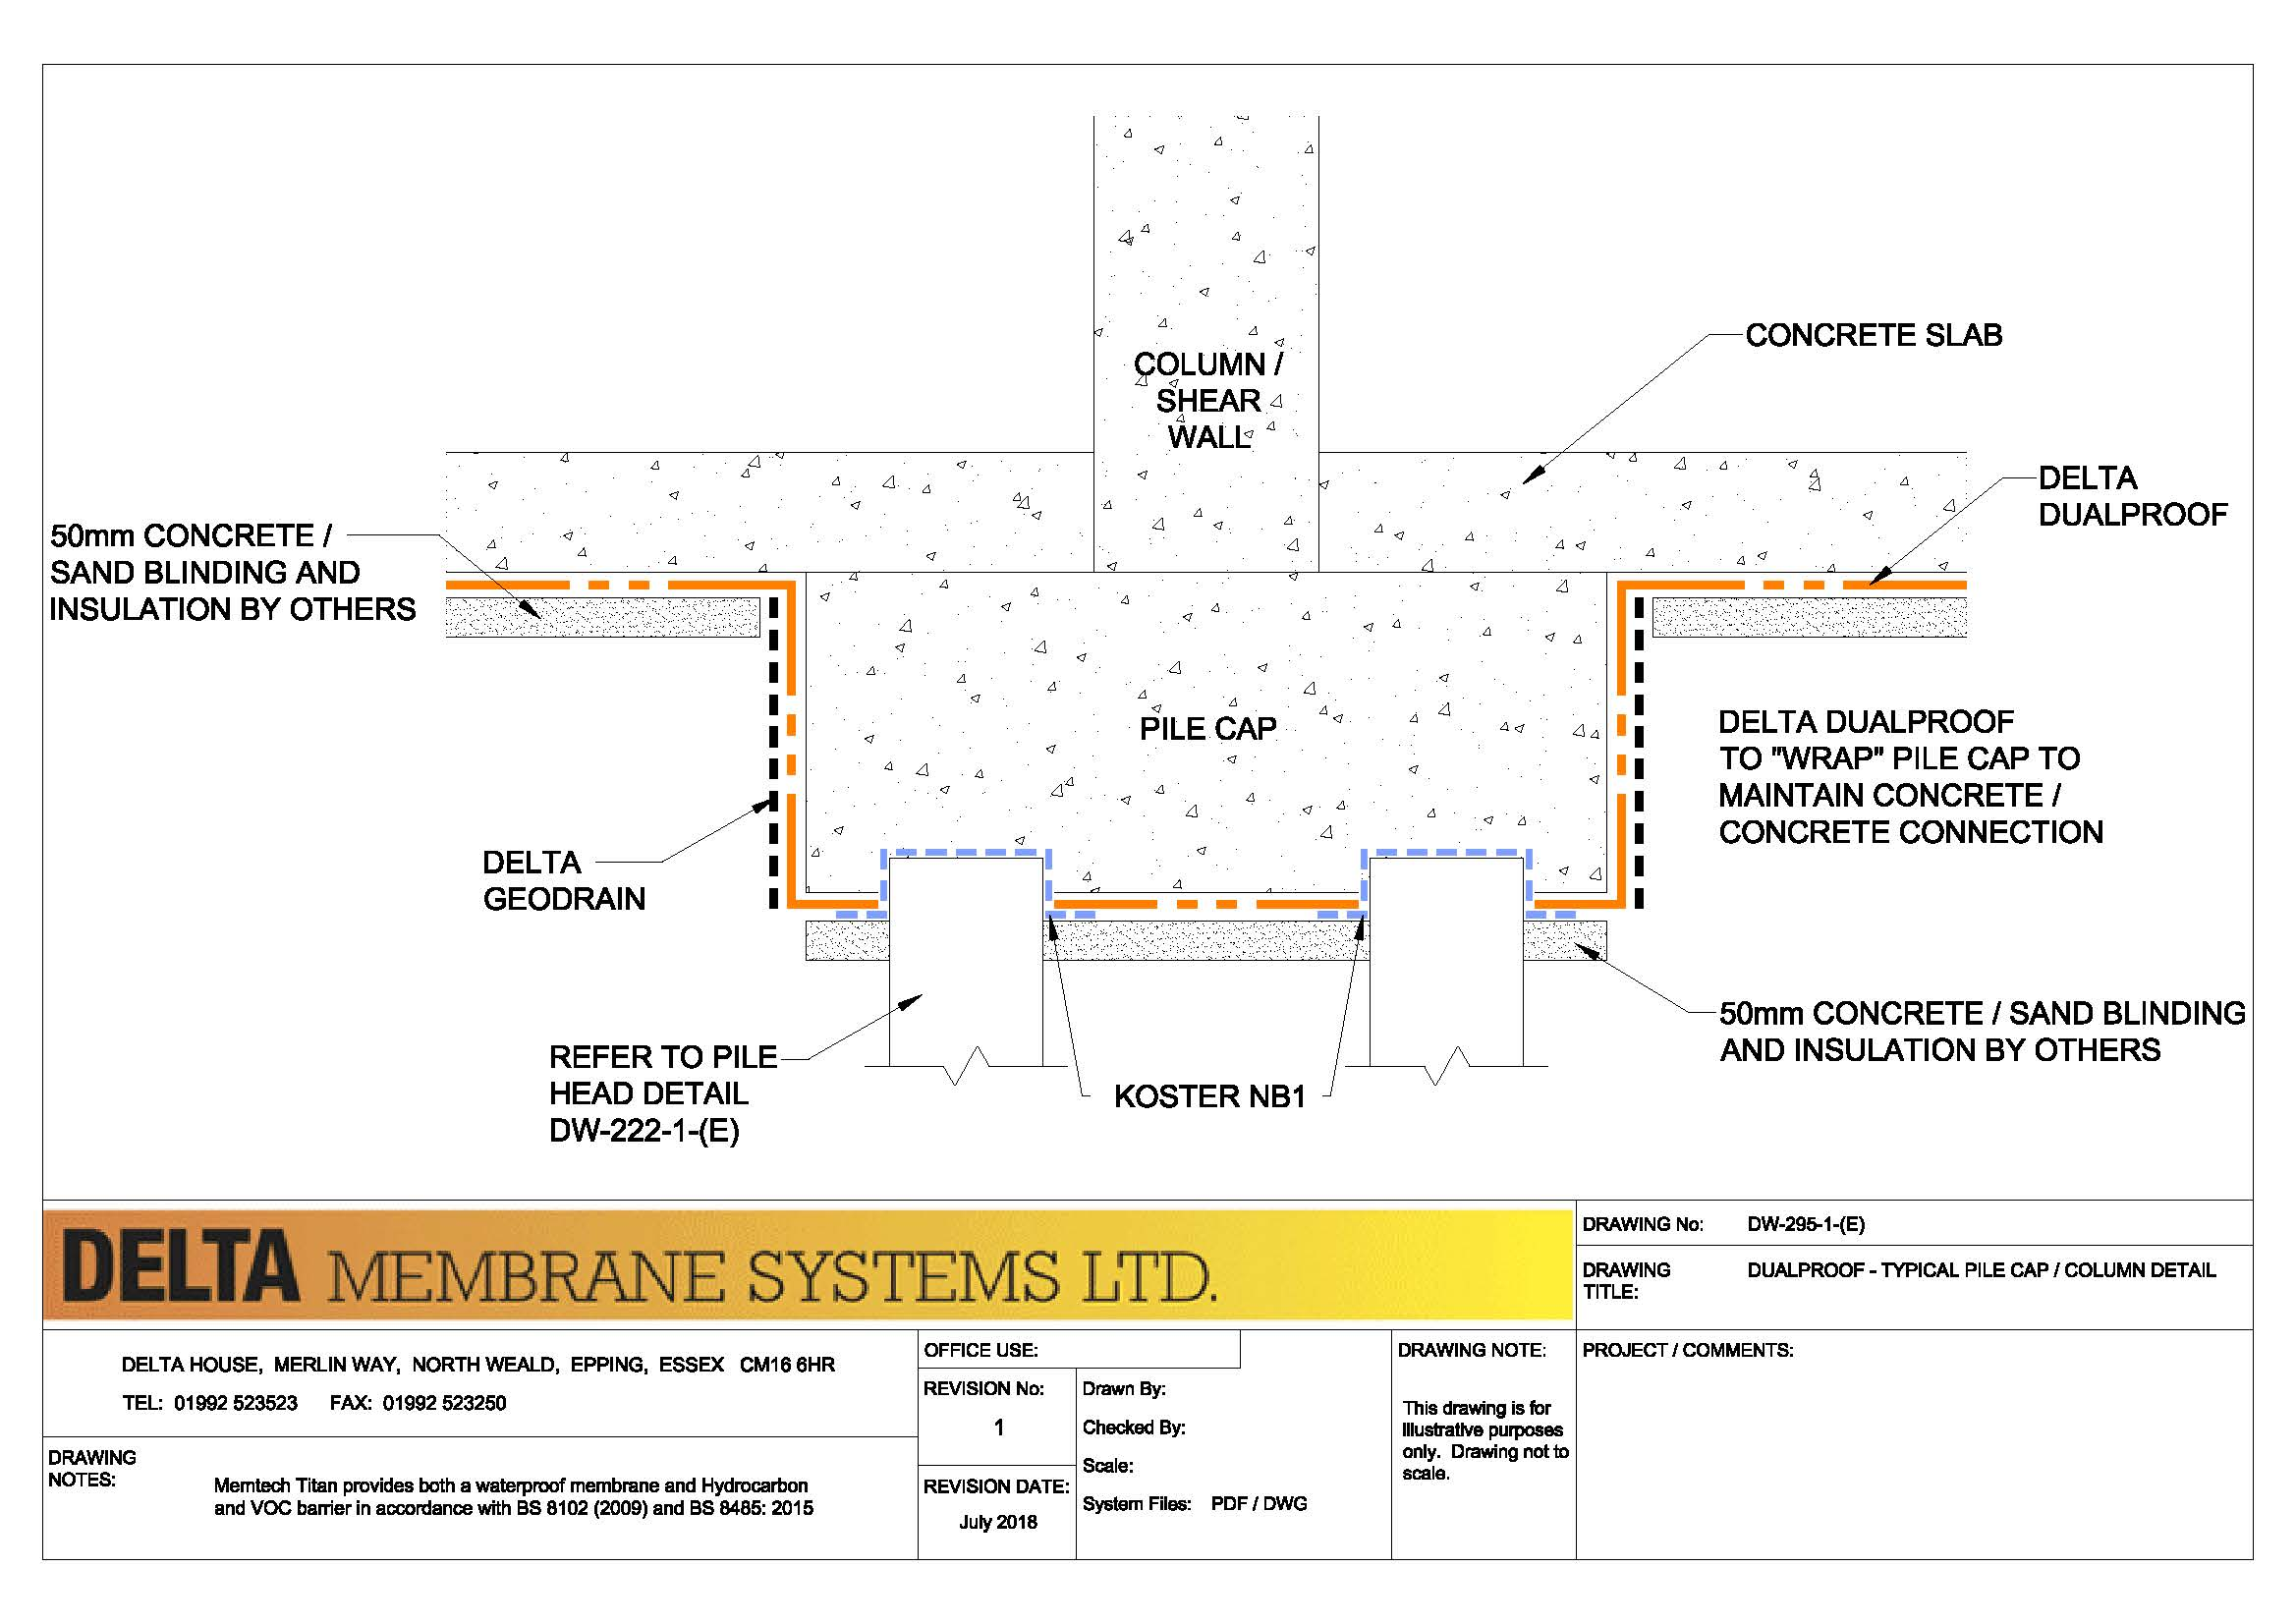 Technical Drawings - DualProof - Delta Membranes